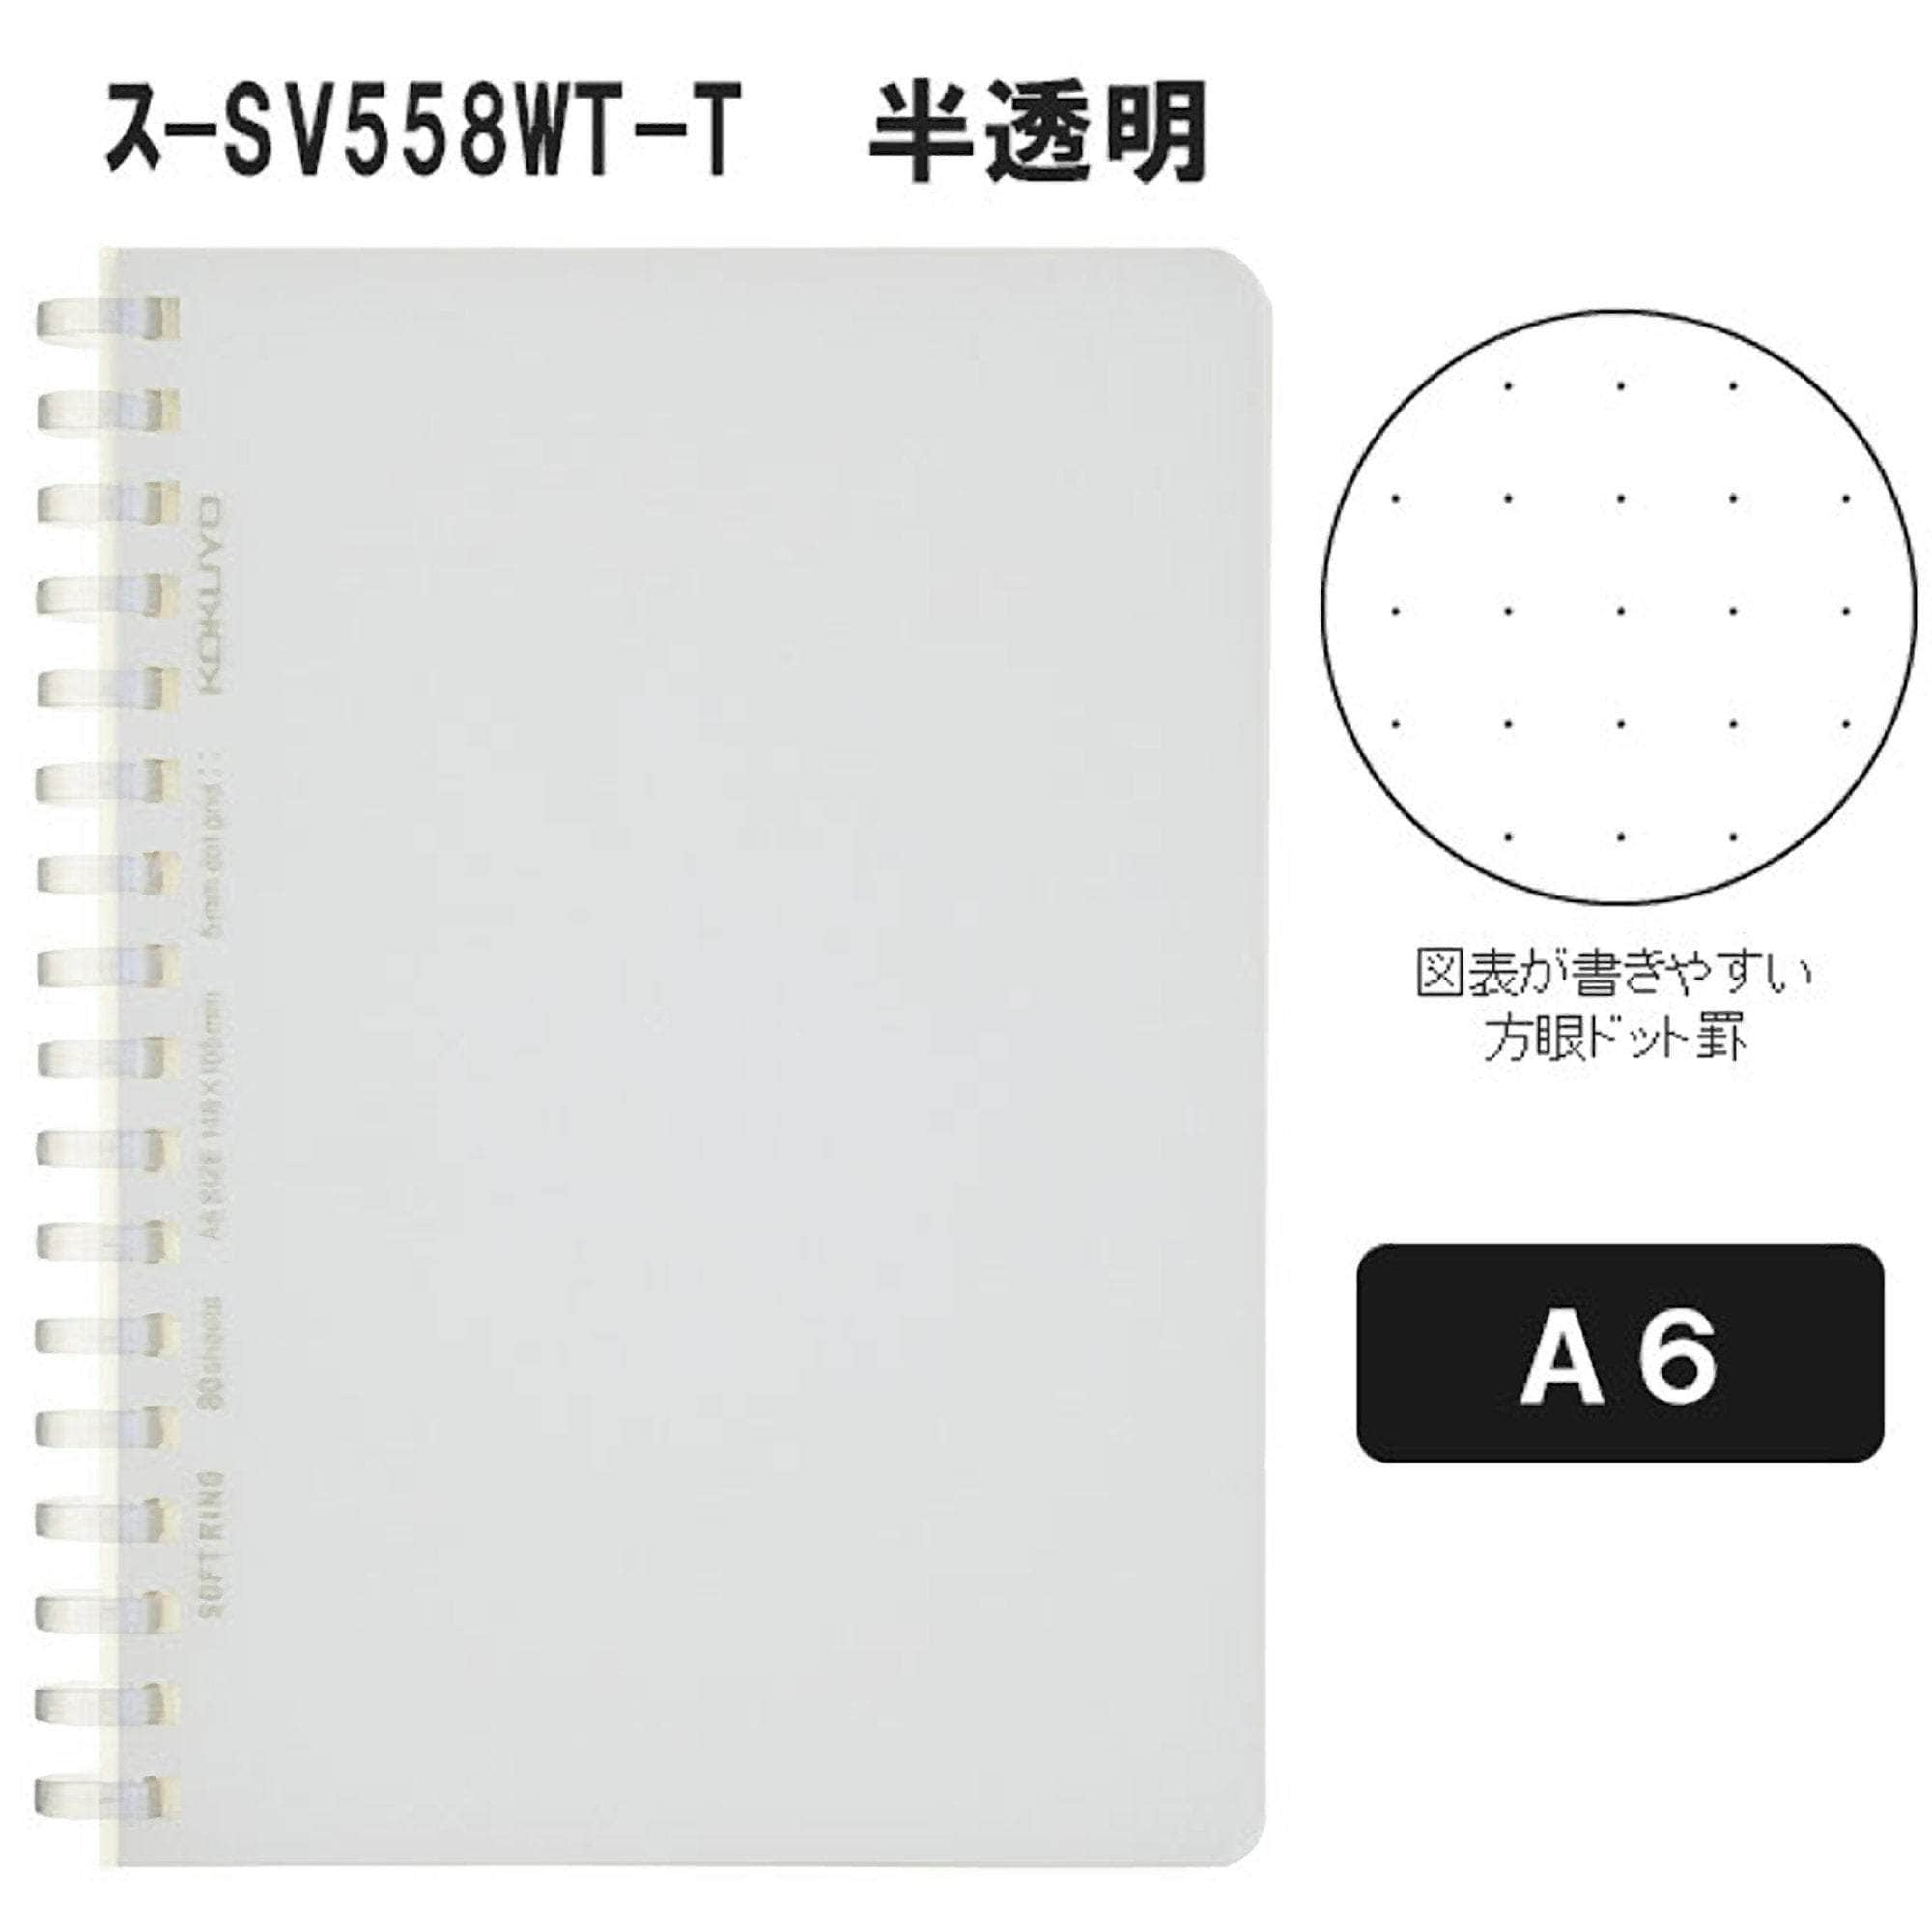 Kokuyo CLEAR Soft Ring Notebook 5mm Dot Grid SV558WT | A6 80 Sheets - The Stationery Life!